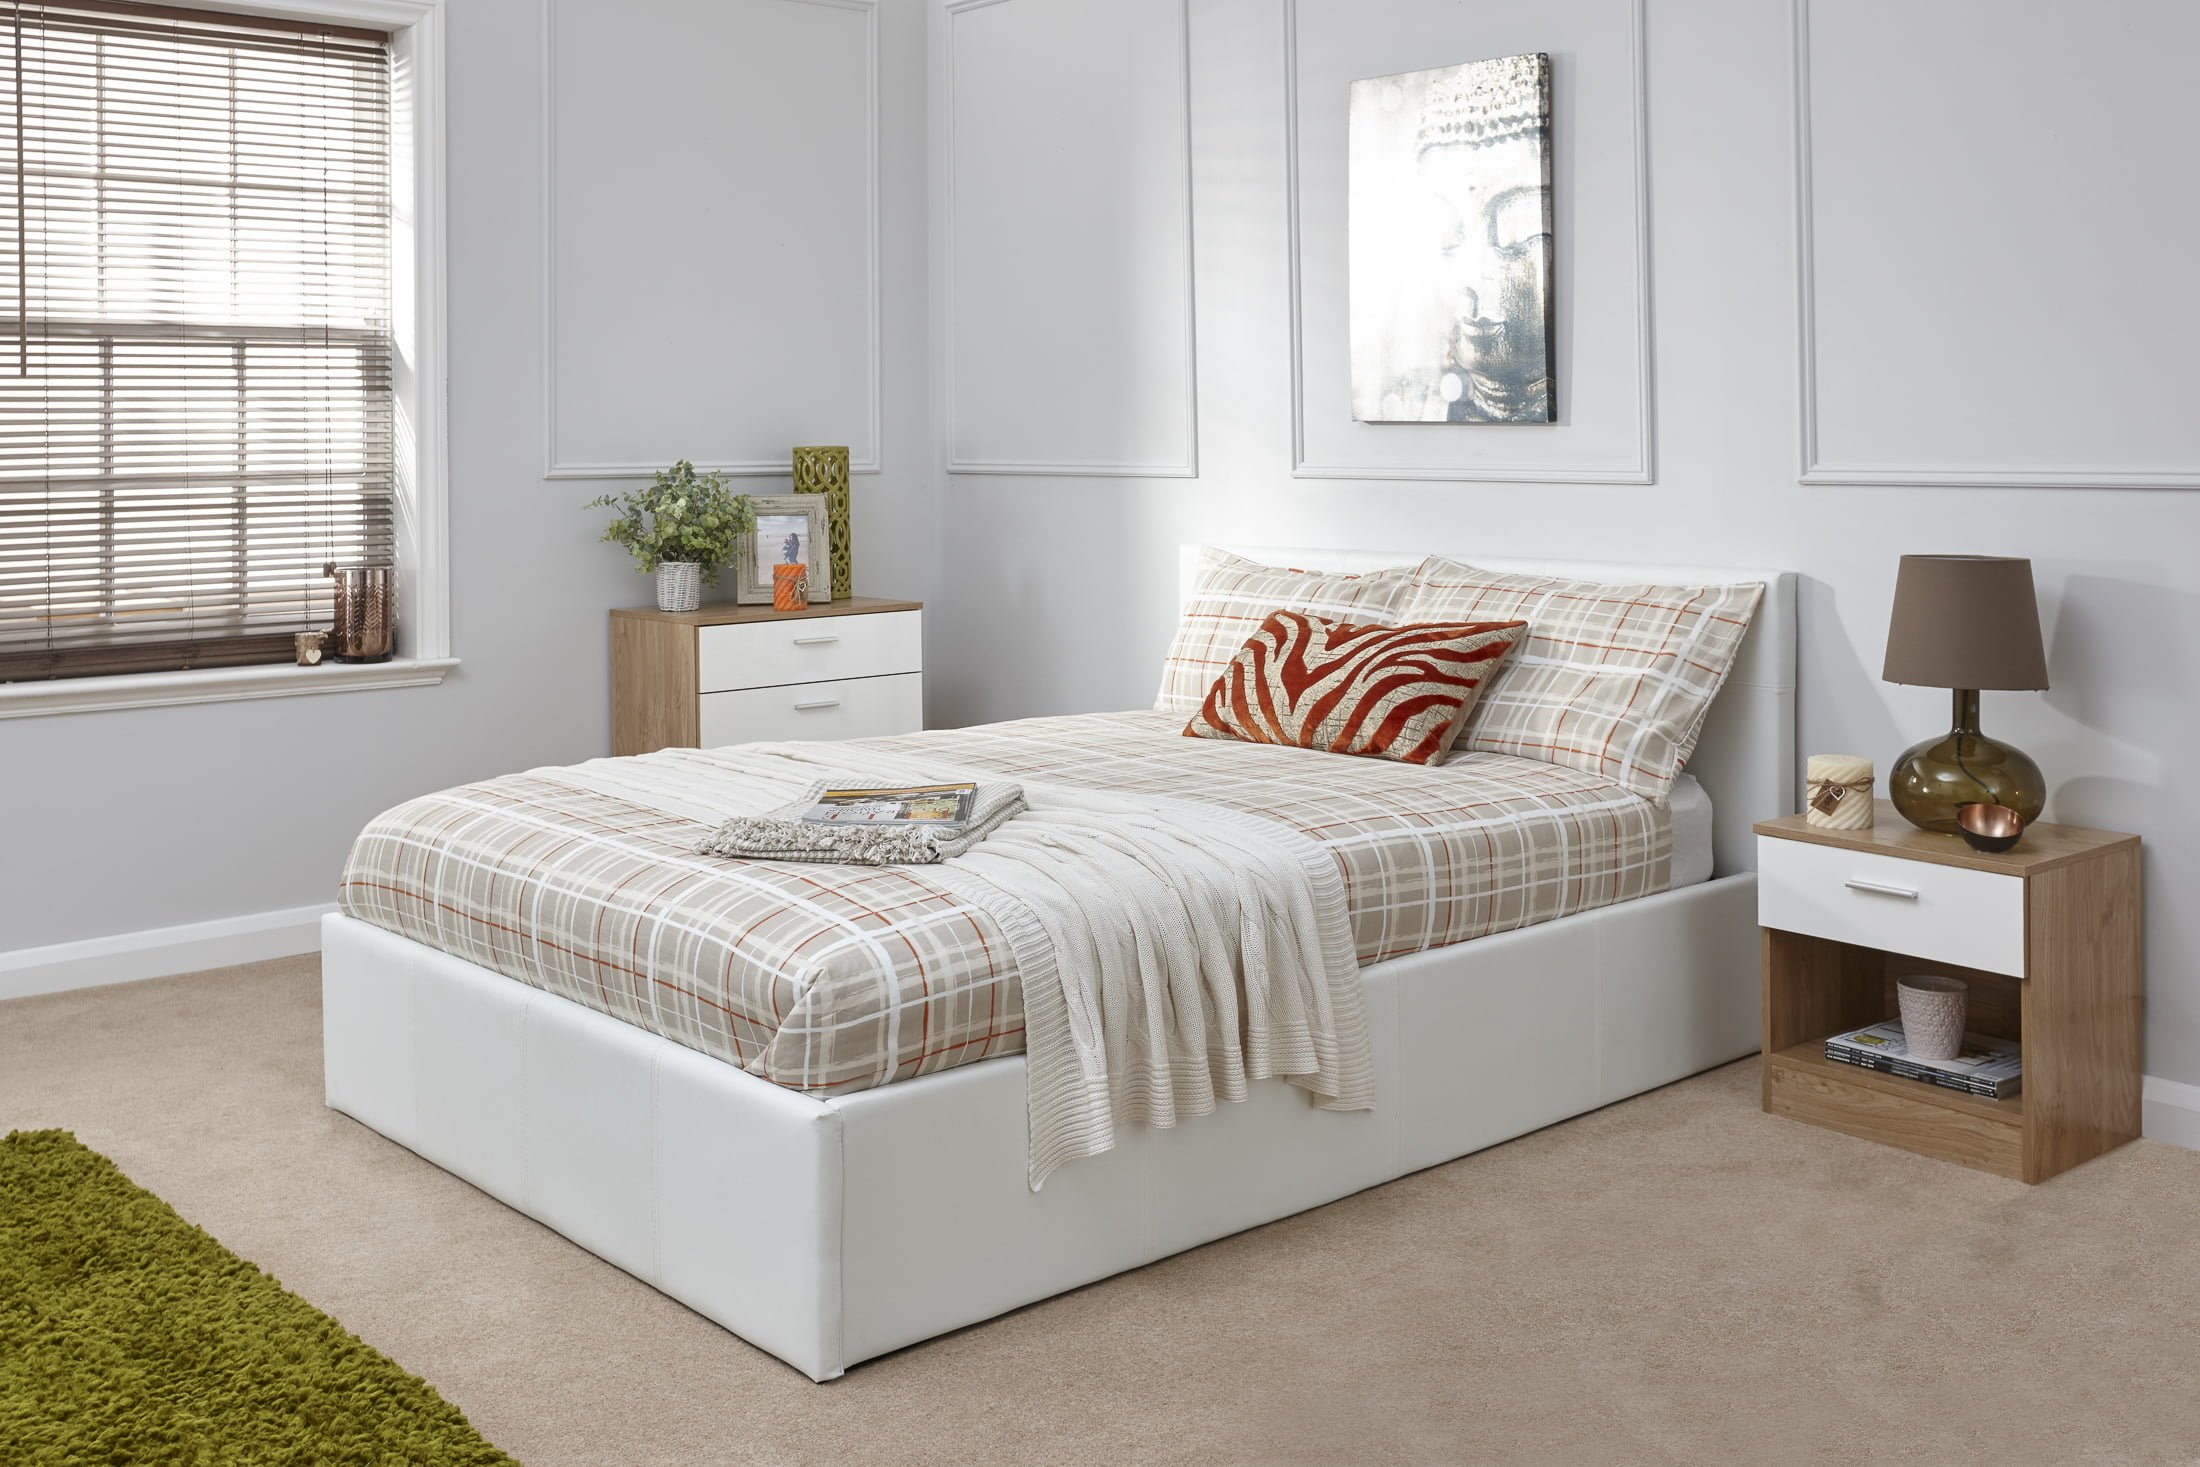 Arizona White Leather Ottoman Bed Frame - Dublin Beds